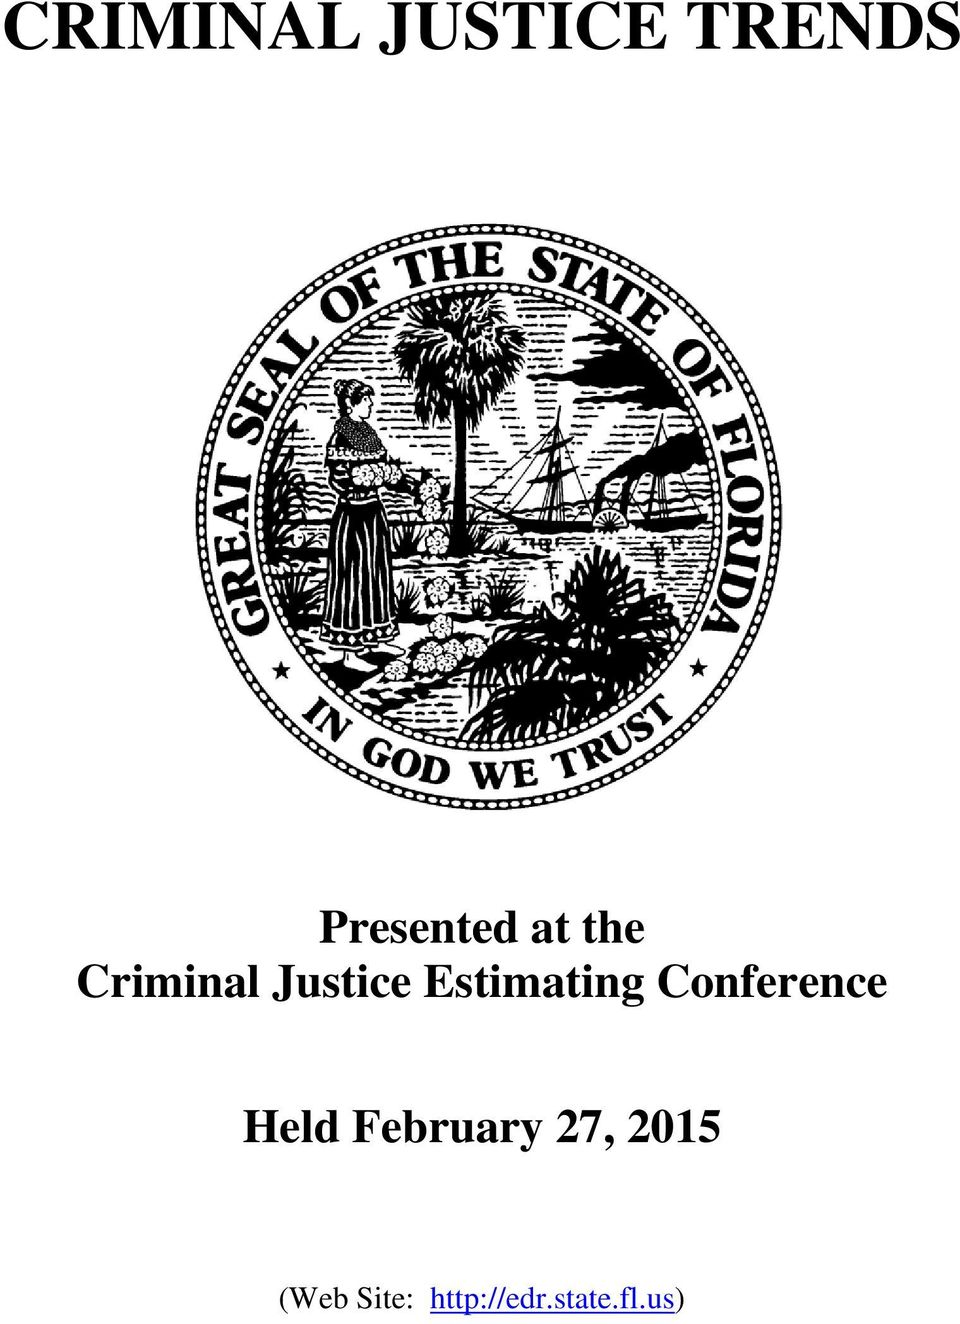 Conference Held February 27, 2015